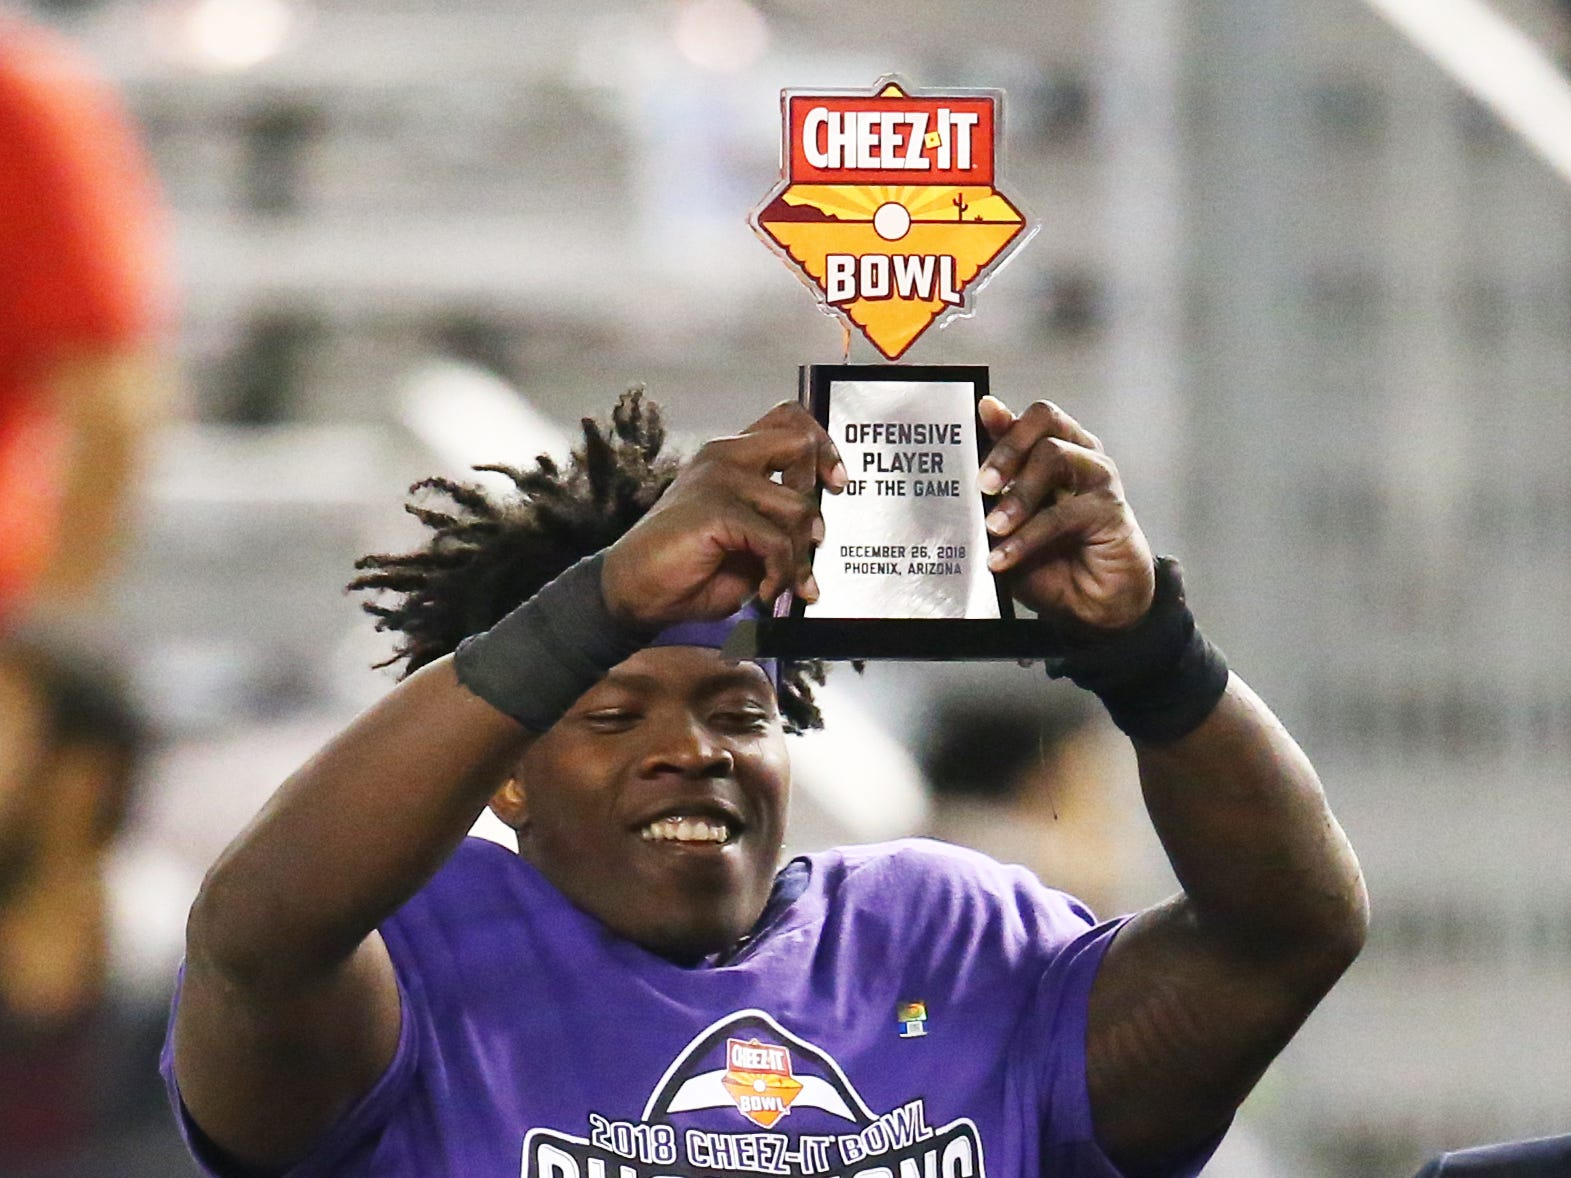 Dec 26, 2018; Phoenix, AZ, USA; Texas Christian Horned Frogs running back Sewo Olonilua celebrates with the offensive MVP trophy after defeating the California Golden Bears in overtime of the 2018 Cheez-It Bowl at Chase Field. Mandatory Credit: